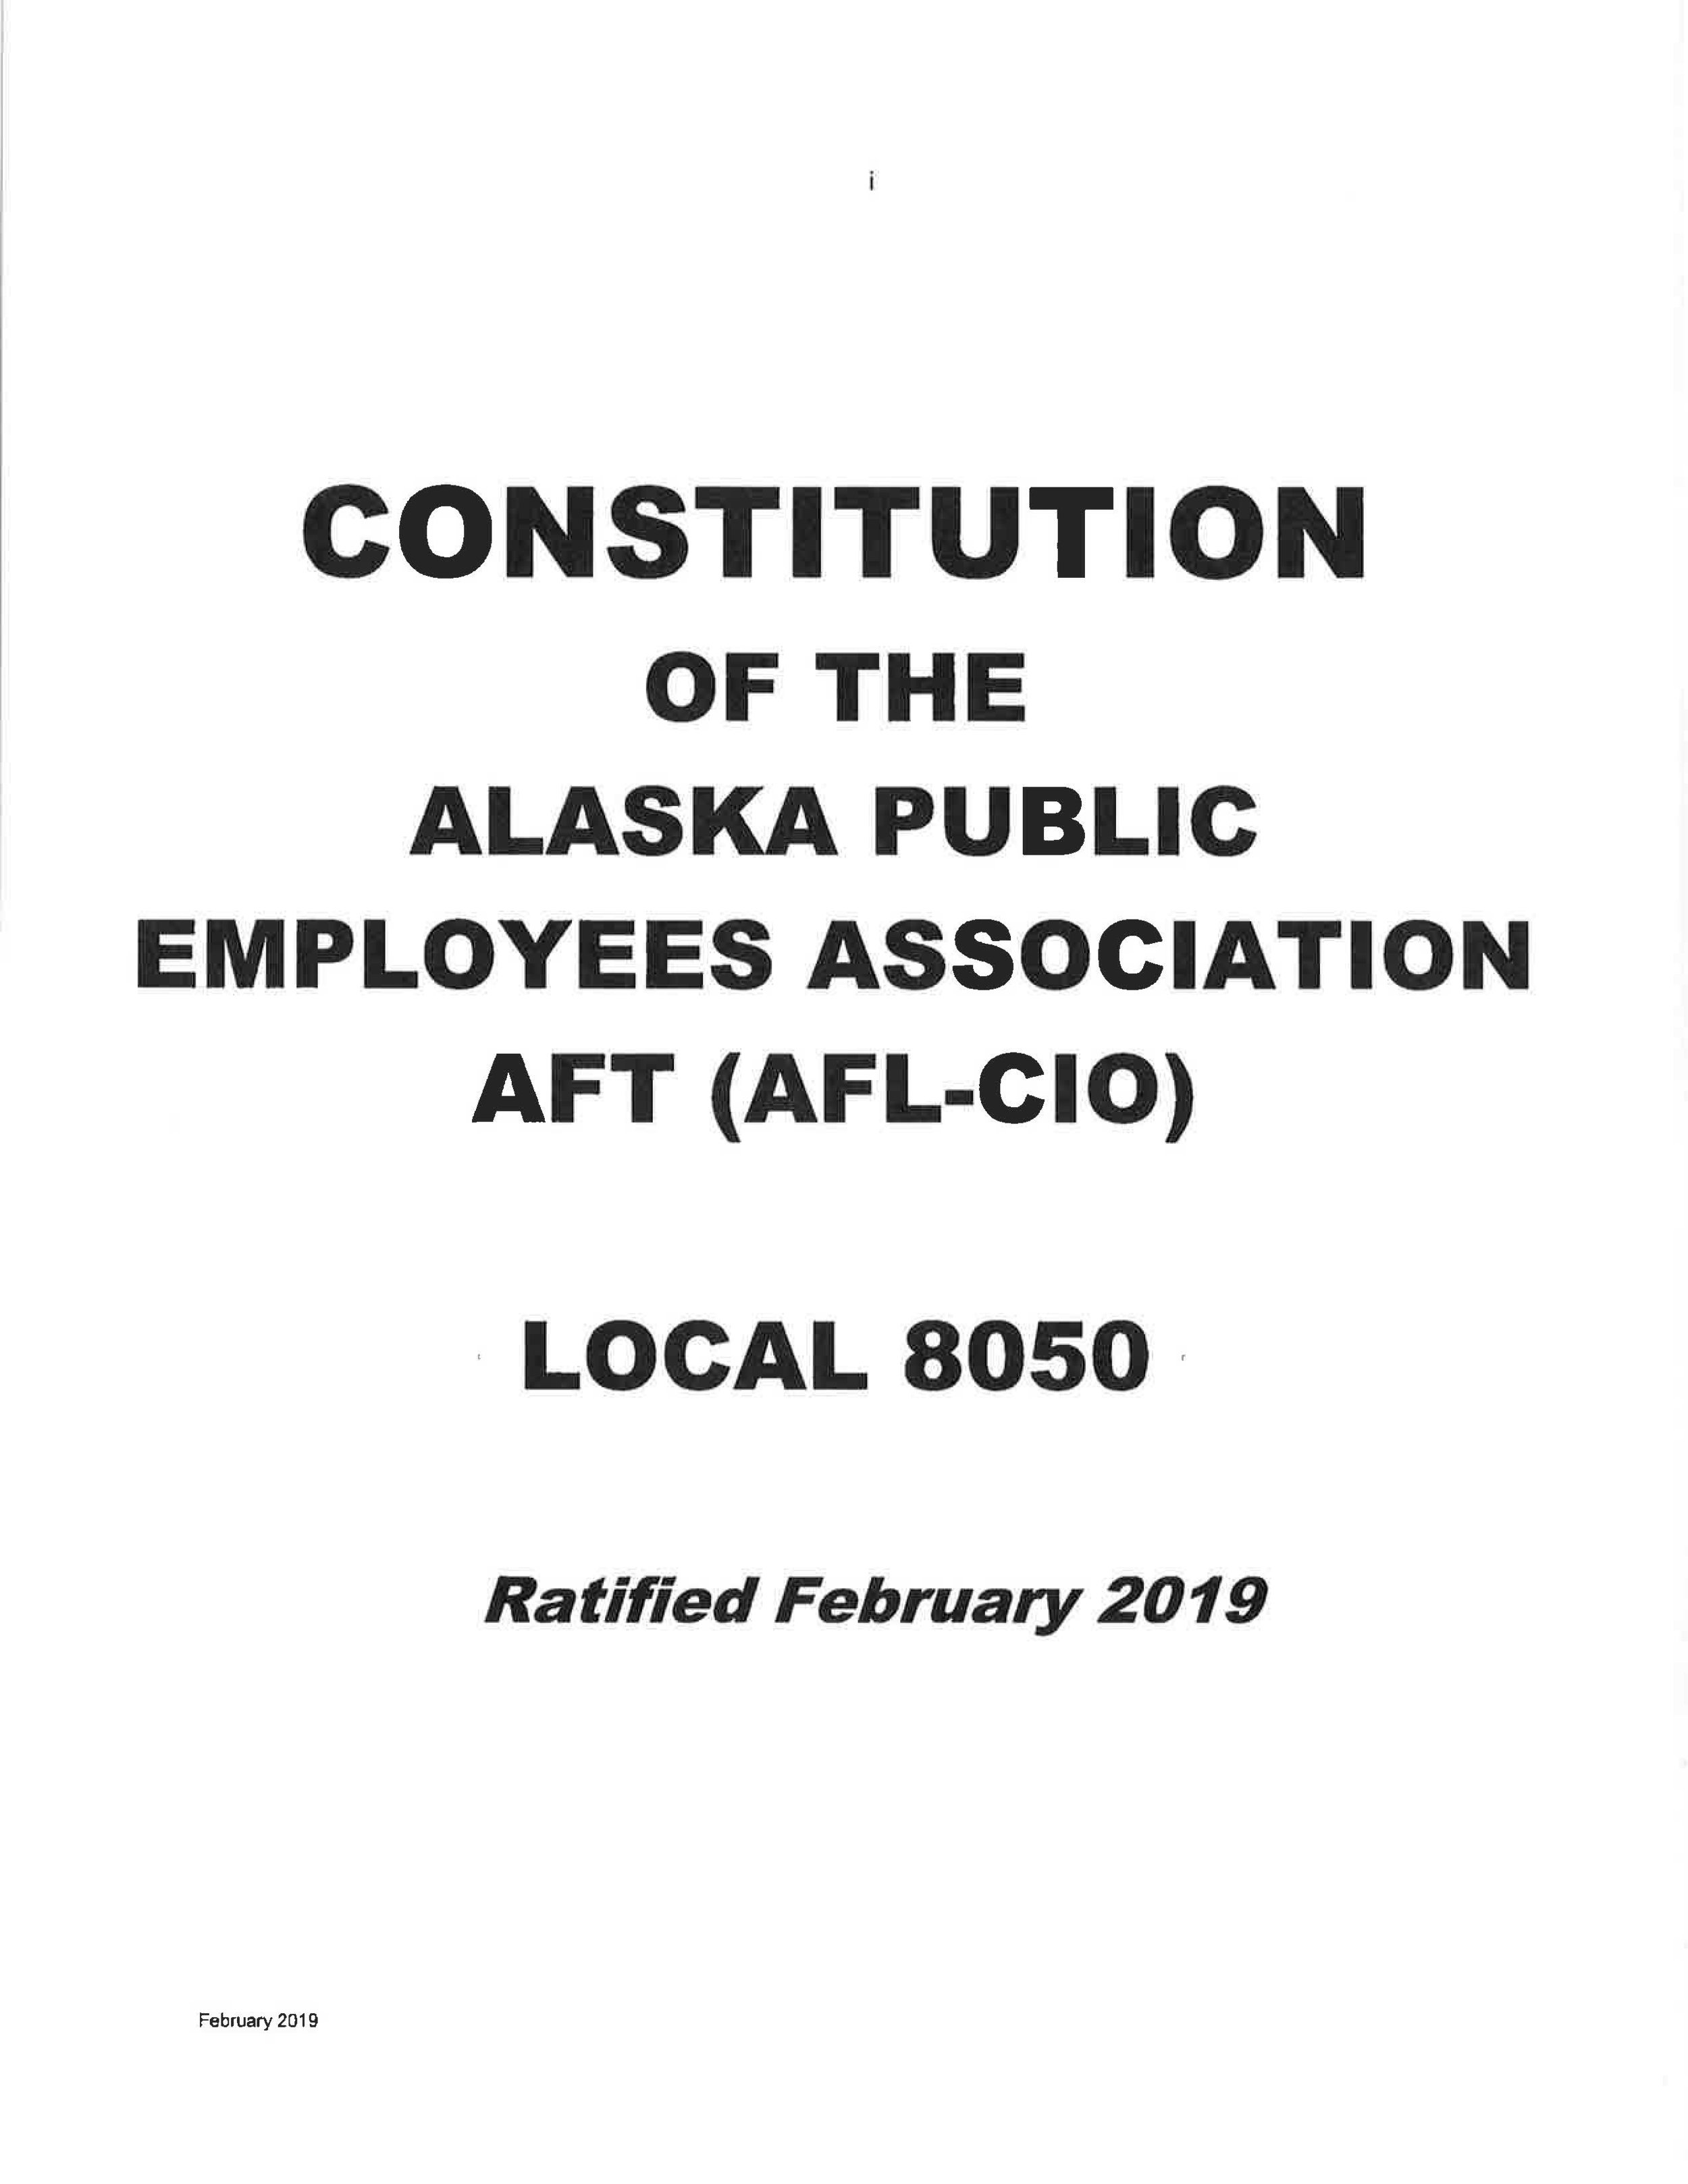 Constitution Cover Page.jpg